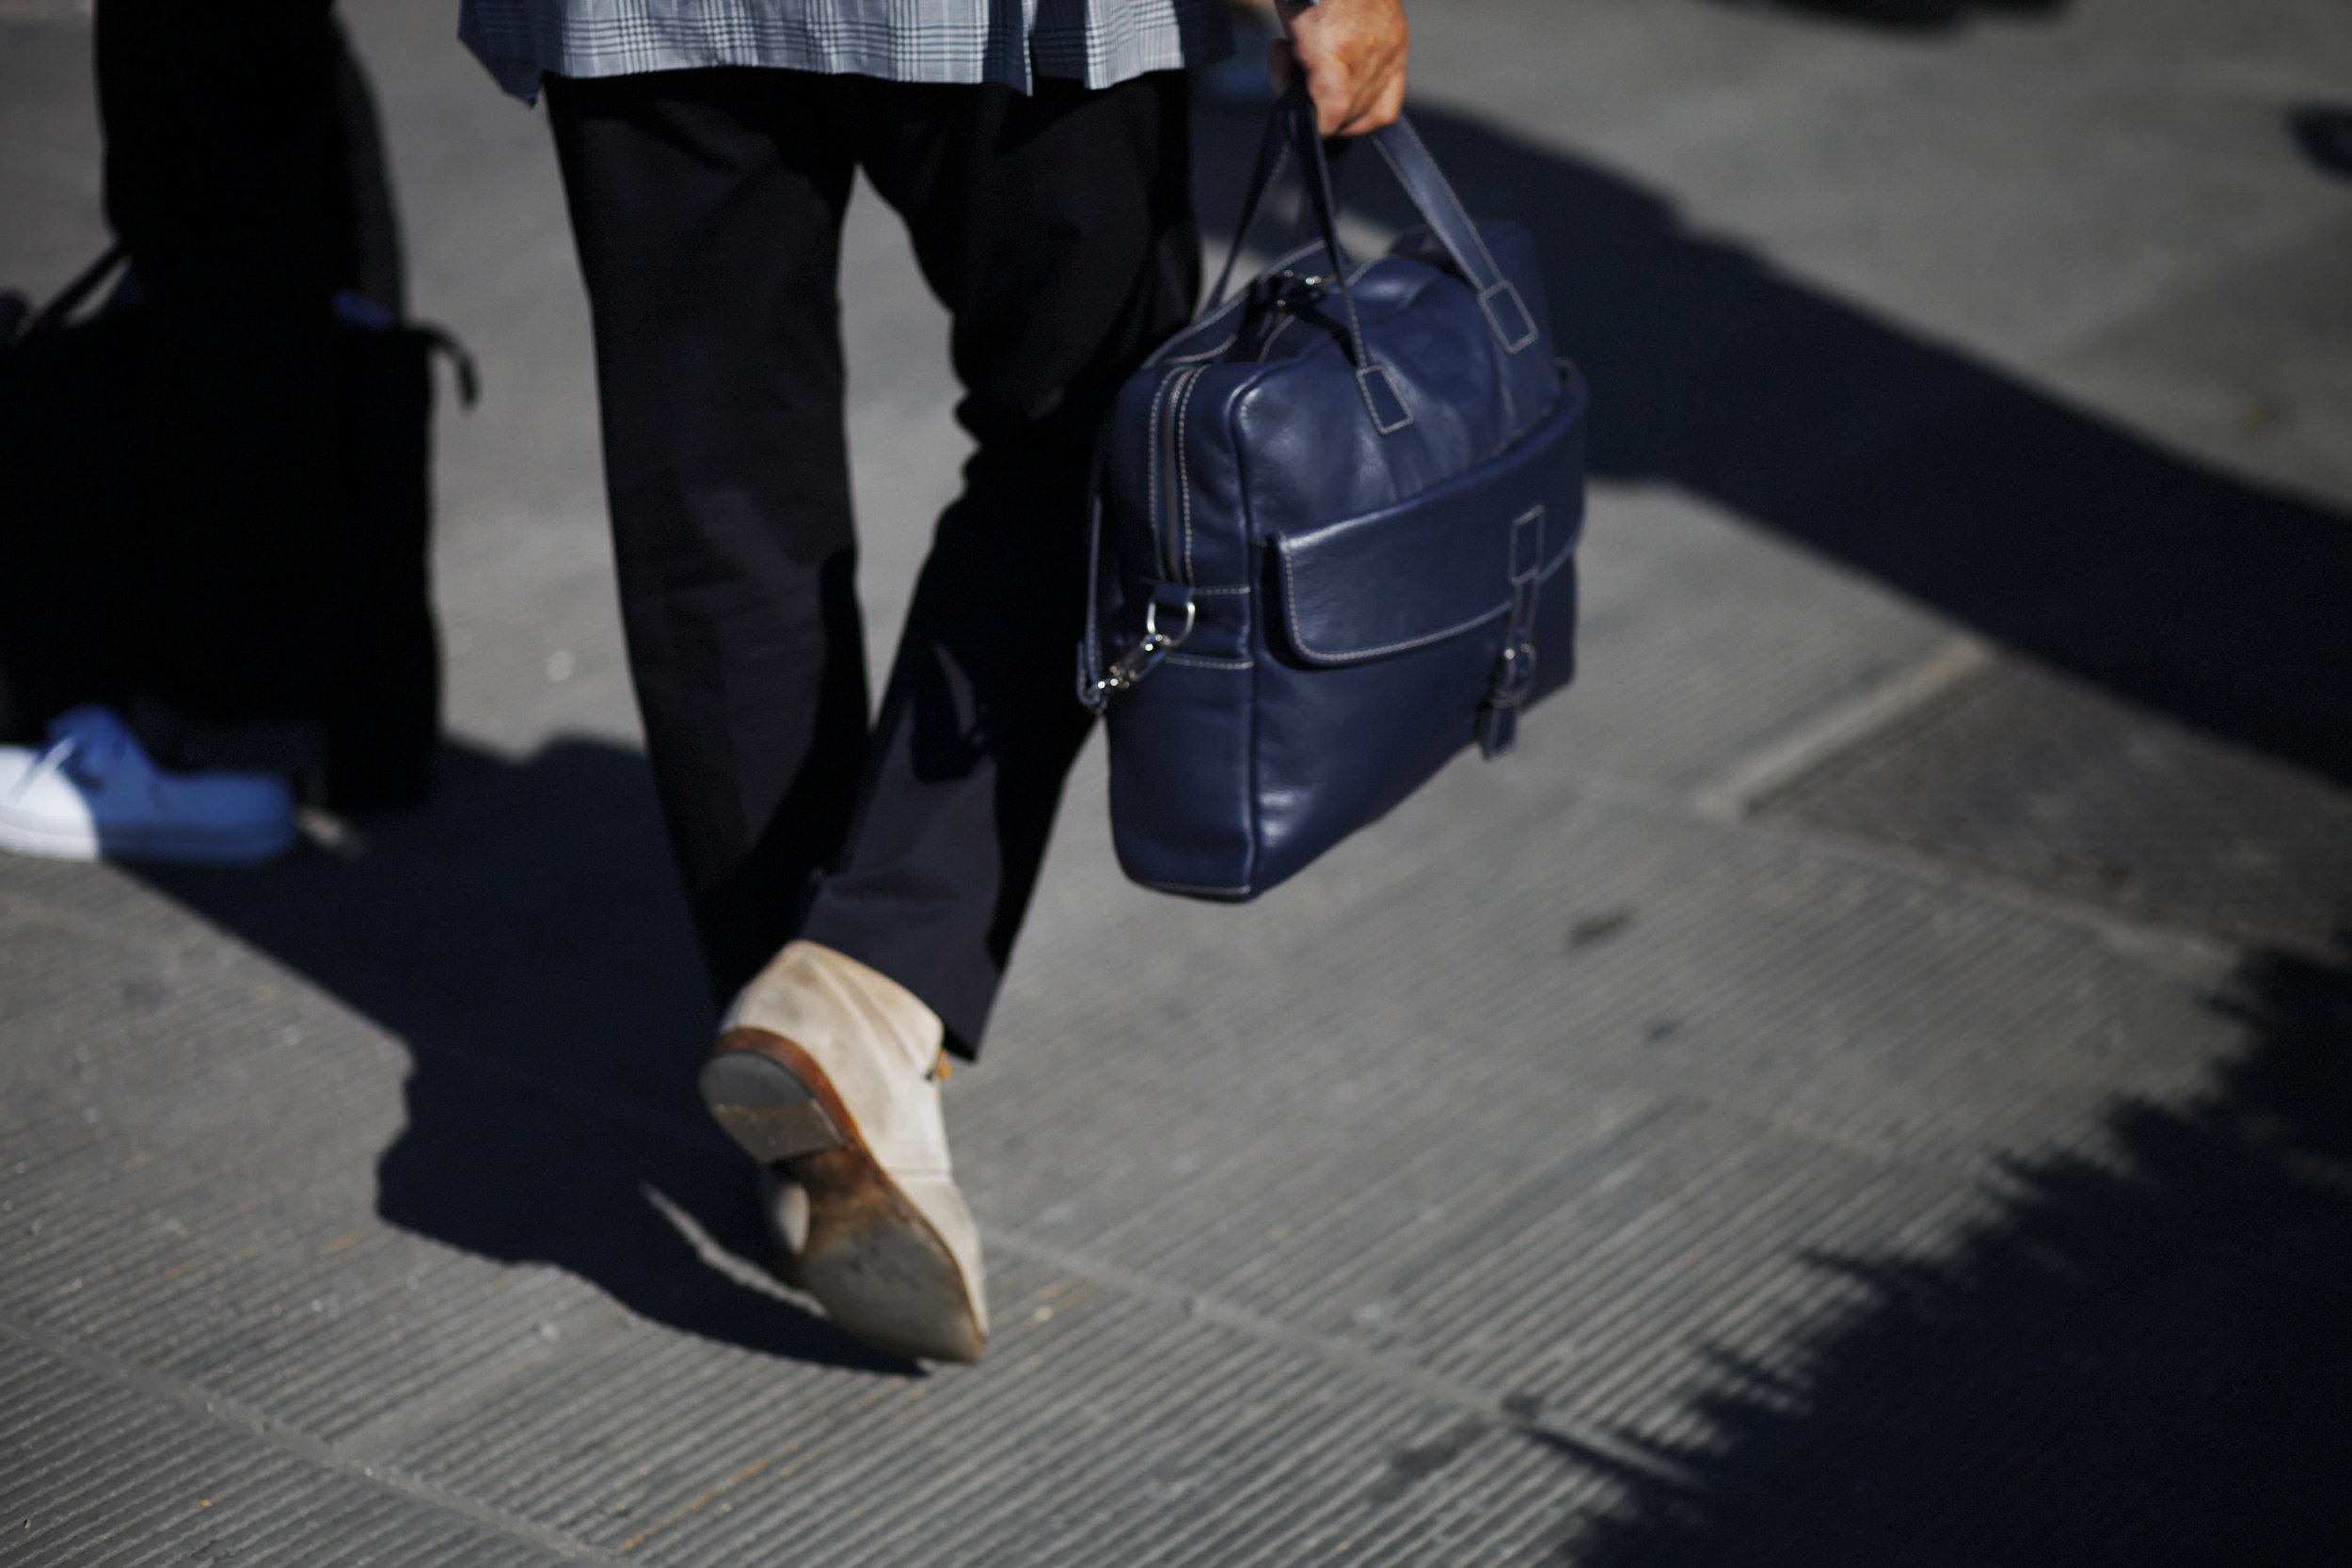 Pitti Uomo les indispensables paris 92 Florence seersucker the armoury bag sac cuir leather